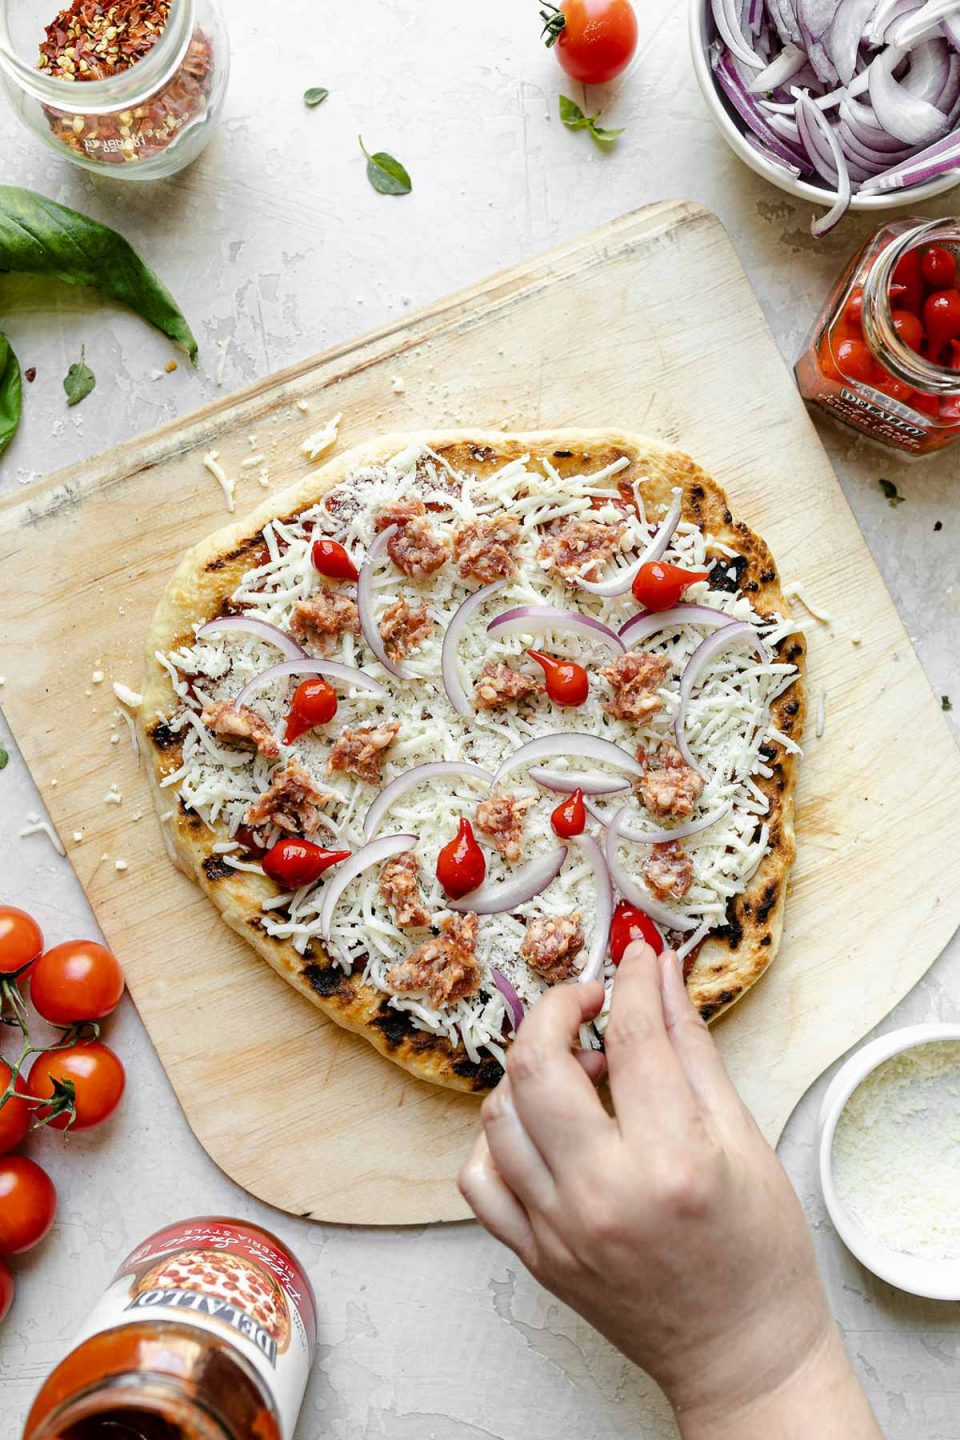 A woman's hand shown topping pizza with cheese, sausage, onions, & sweetie drop peppers. The crust sits atop a wooden pizza peel, surrounded by fresh basil, cherry tomatoes, cheese, peppers, & sliced red onion.